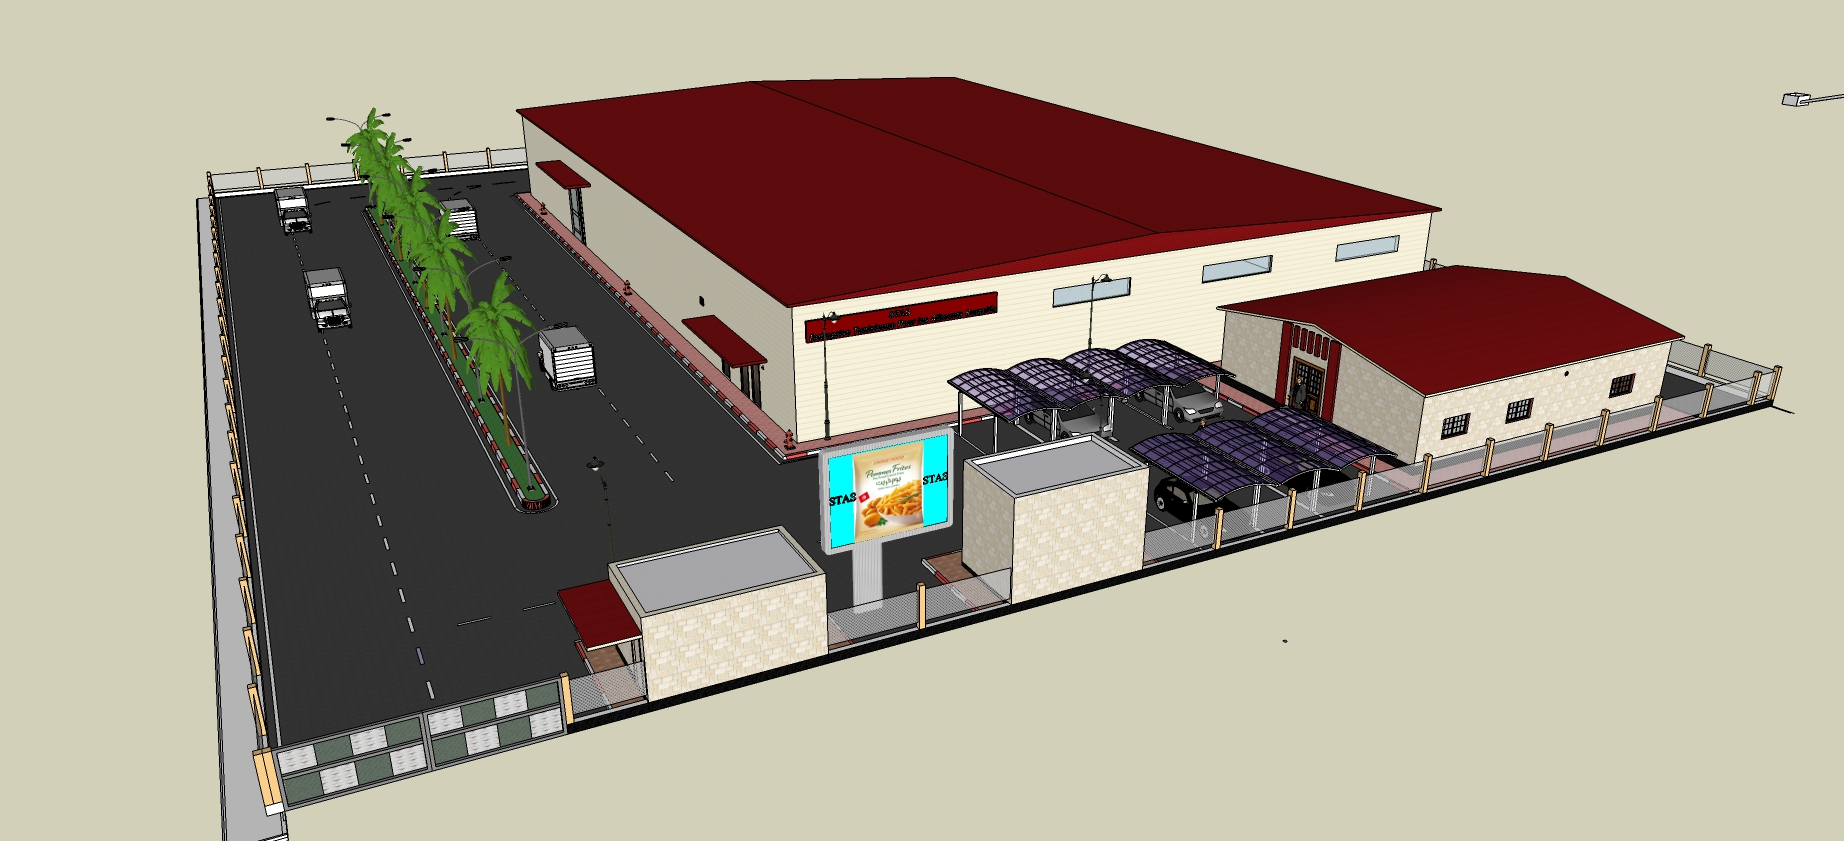 tunisia frezon foods Project Picture